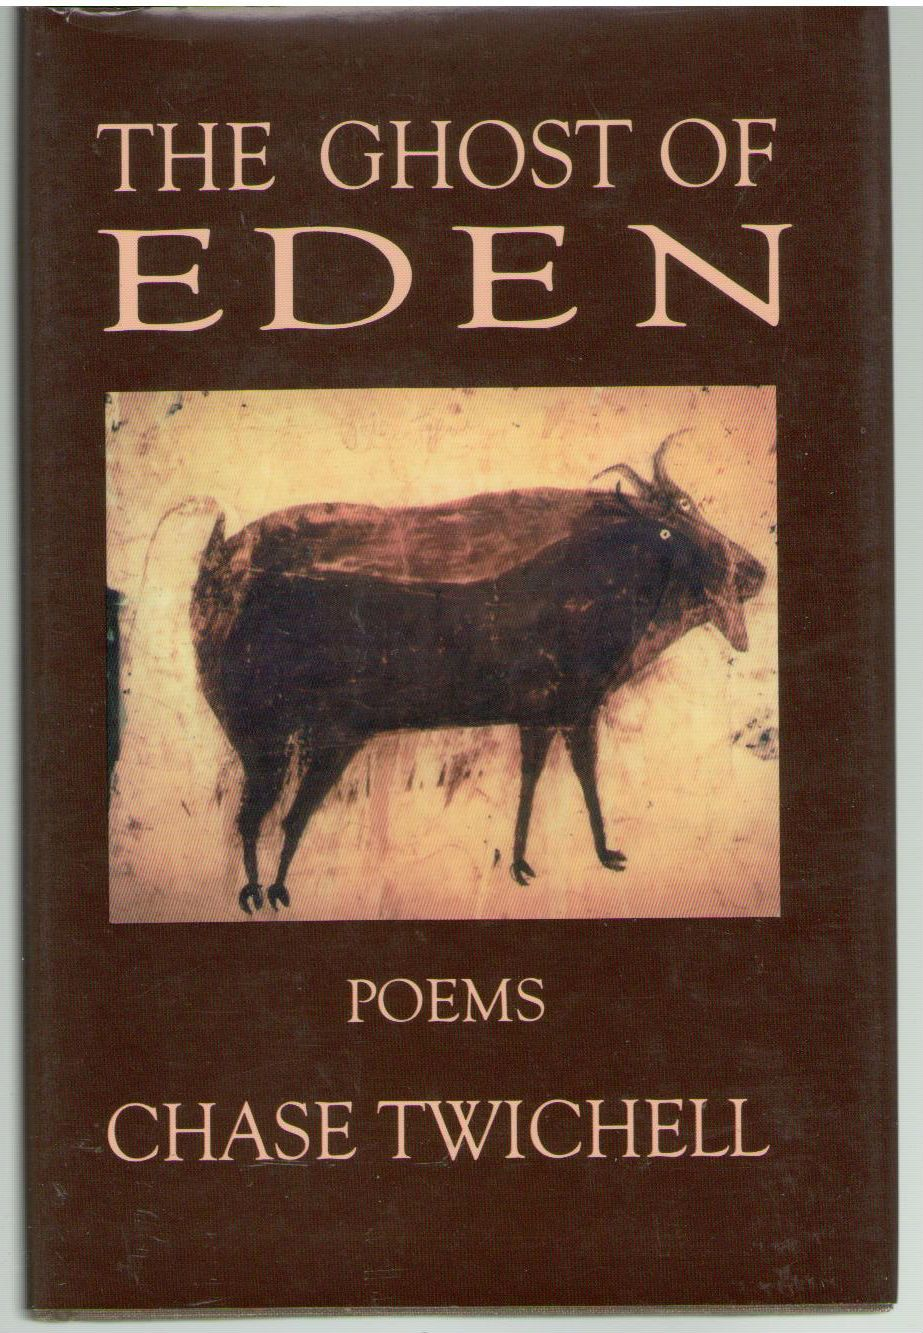 The Ghost of Eden: Poems, Chase Twichell